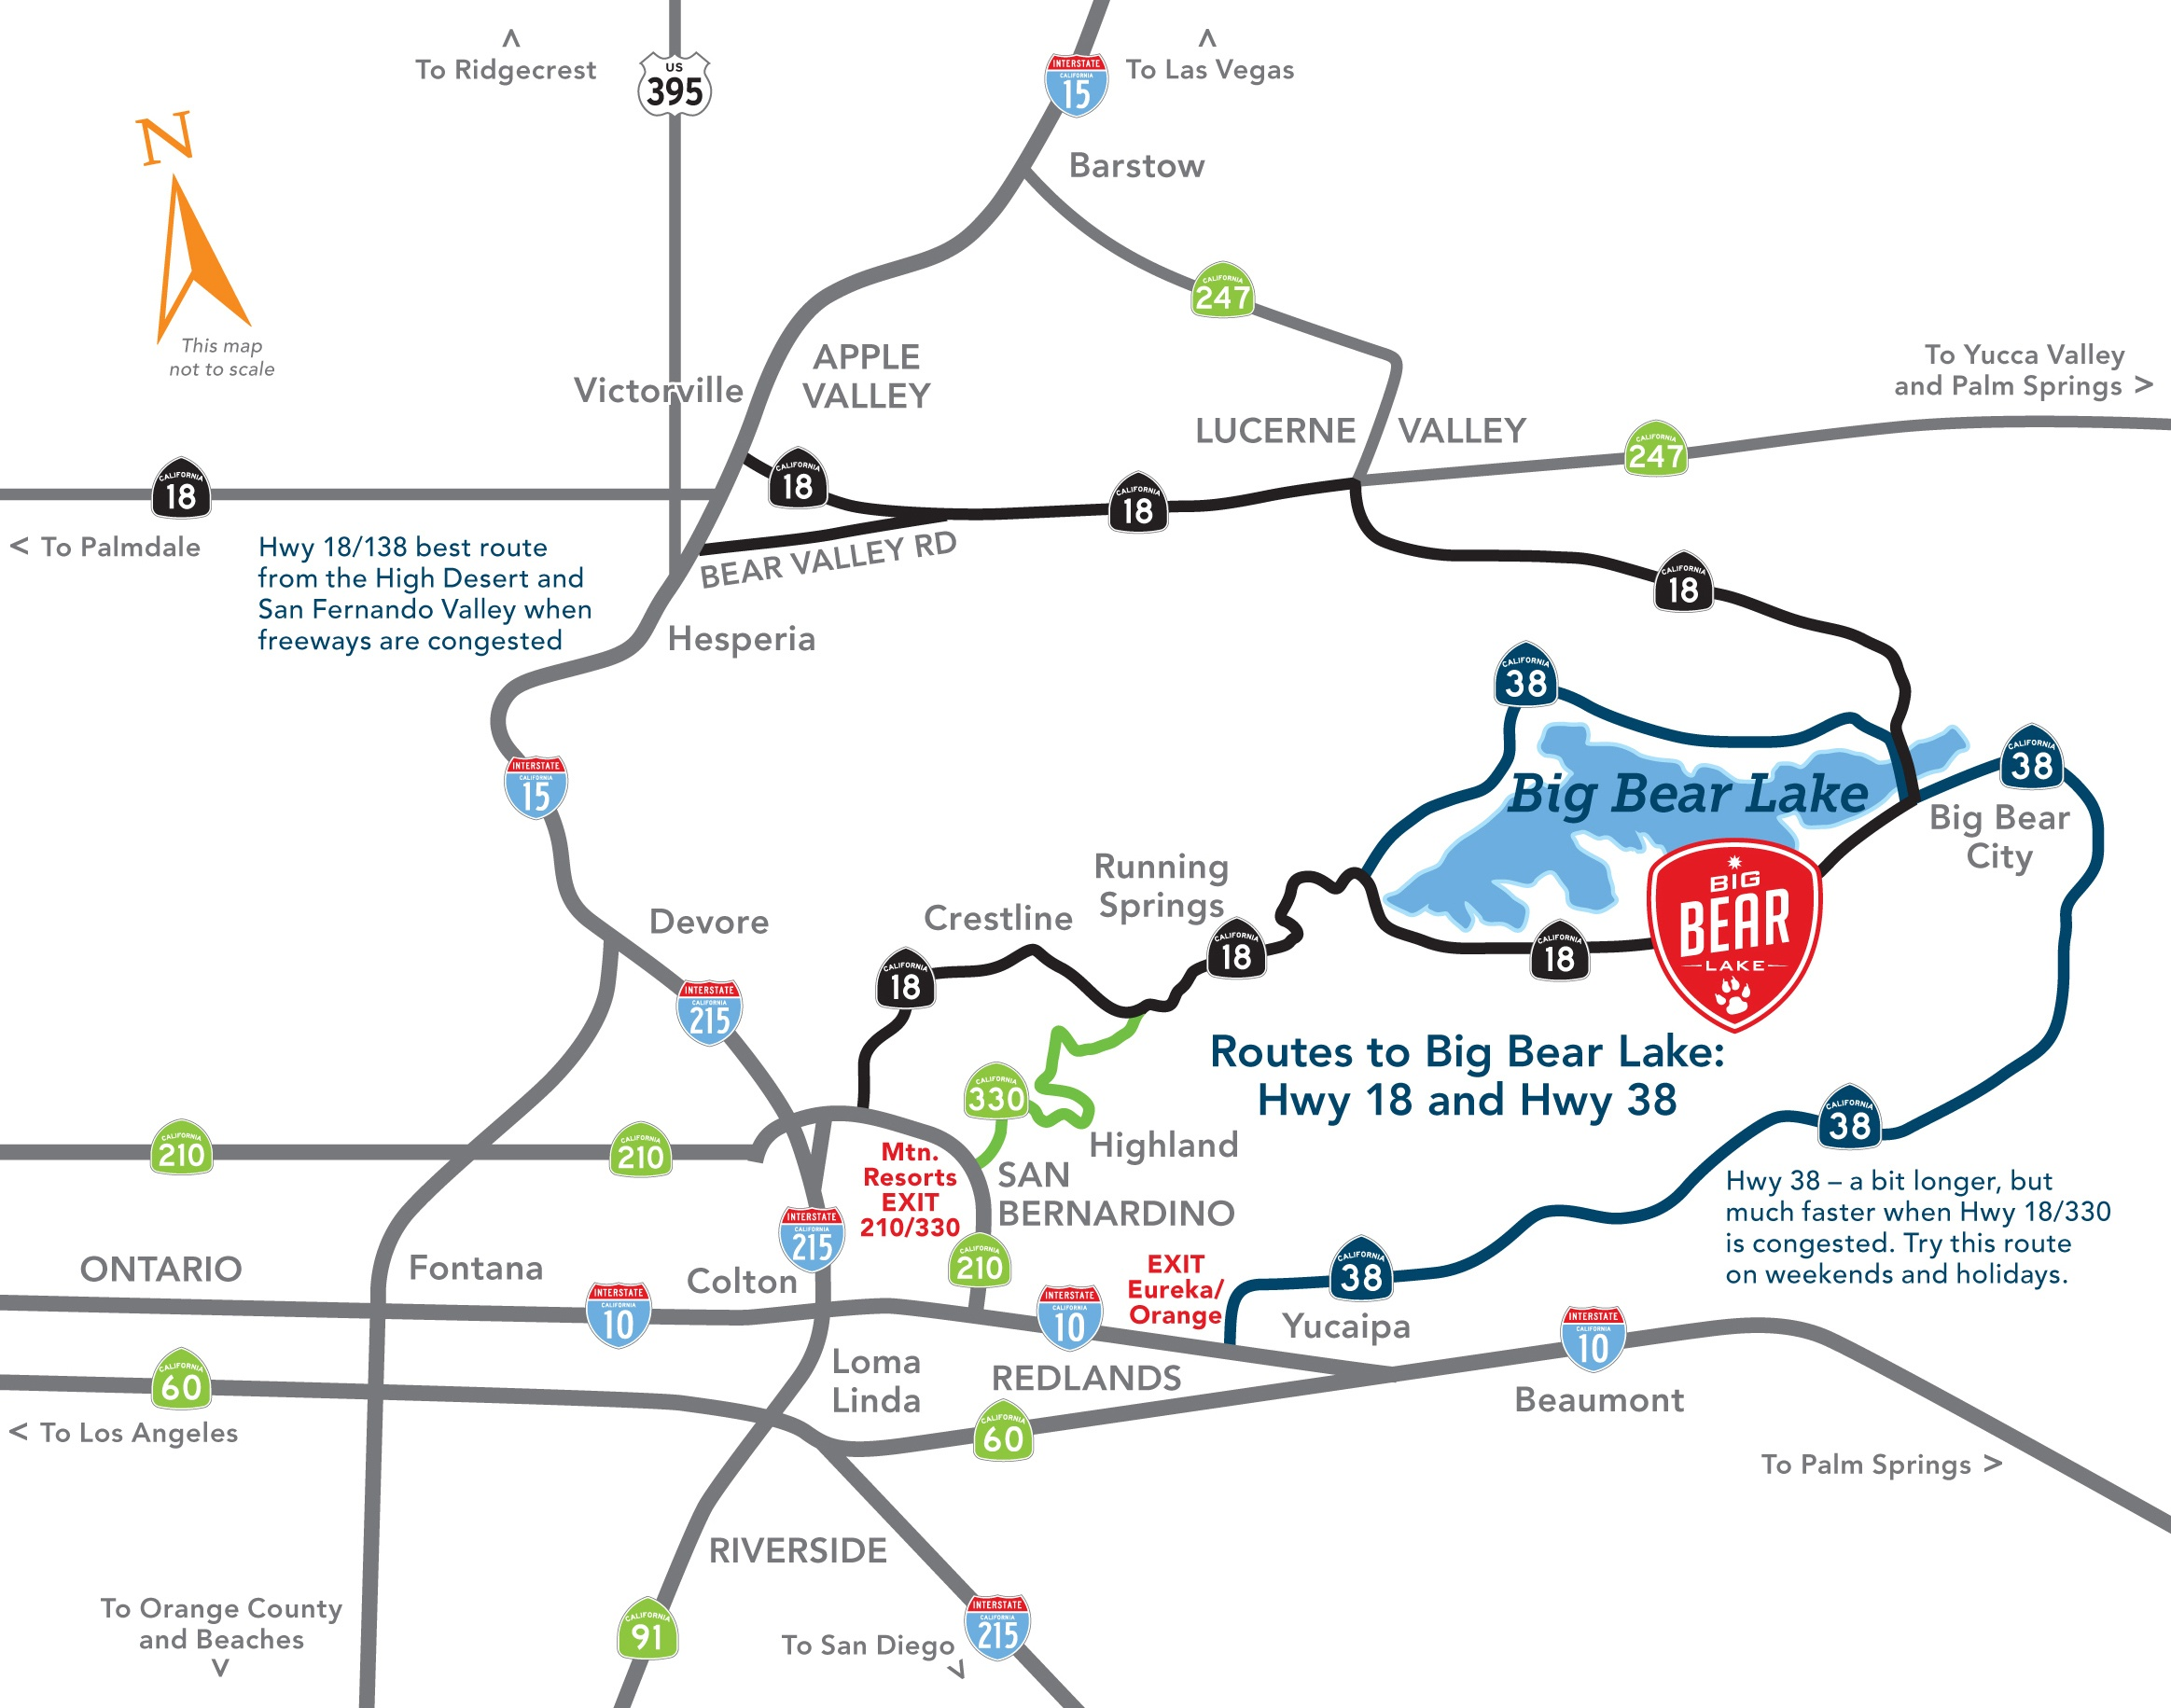 Driving Directions Into Big Bear Lake (4 Unique Routes) - Free Printable Driving Directions